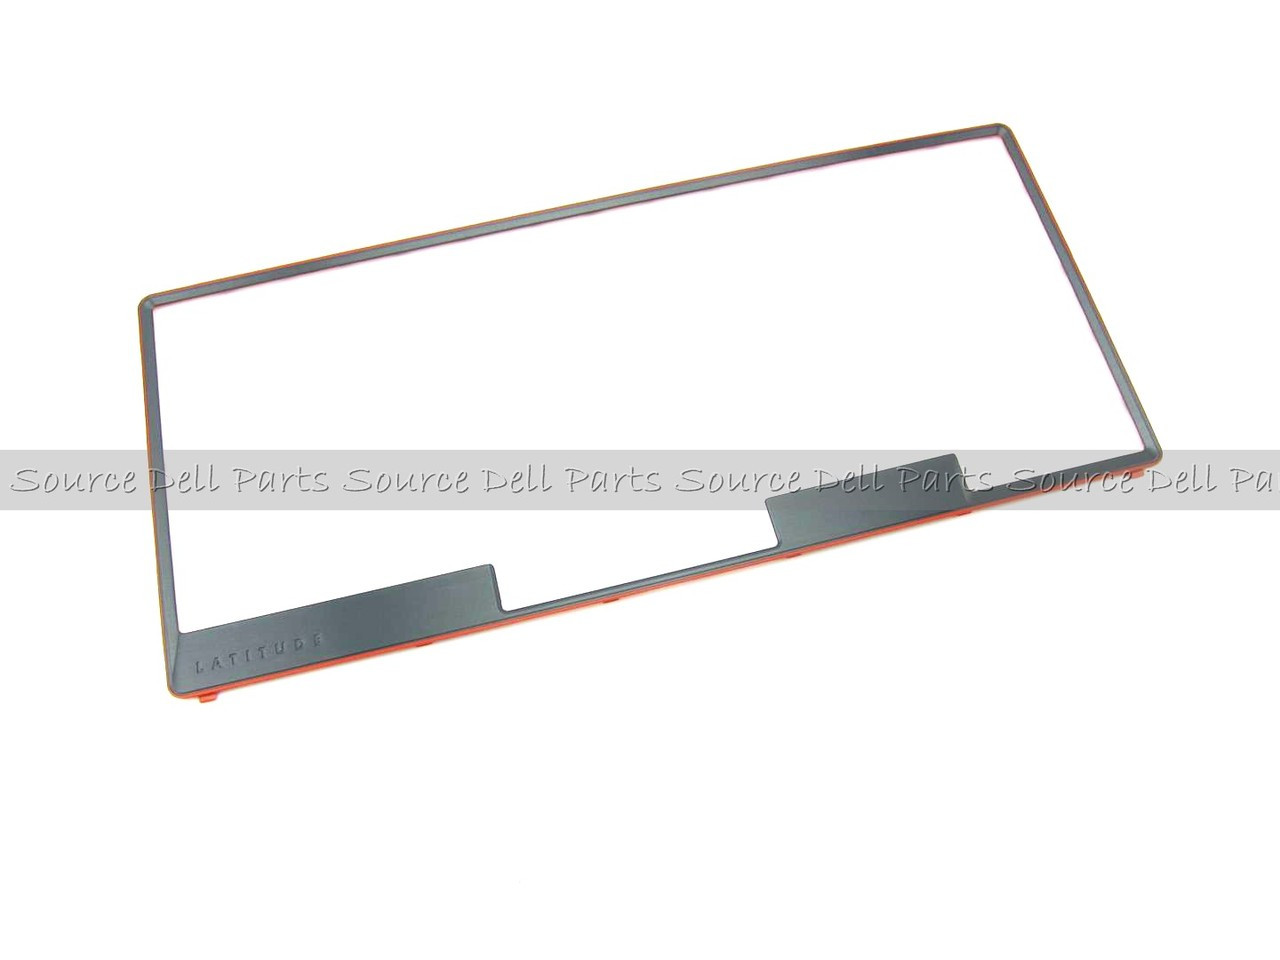 Dell Latitude E6420 / 6320 Keyboard Bezel Trim Overlay - 2KJ1G